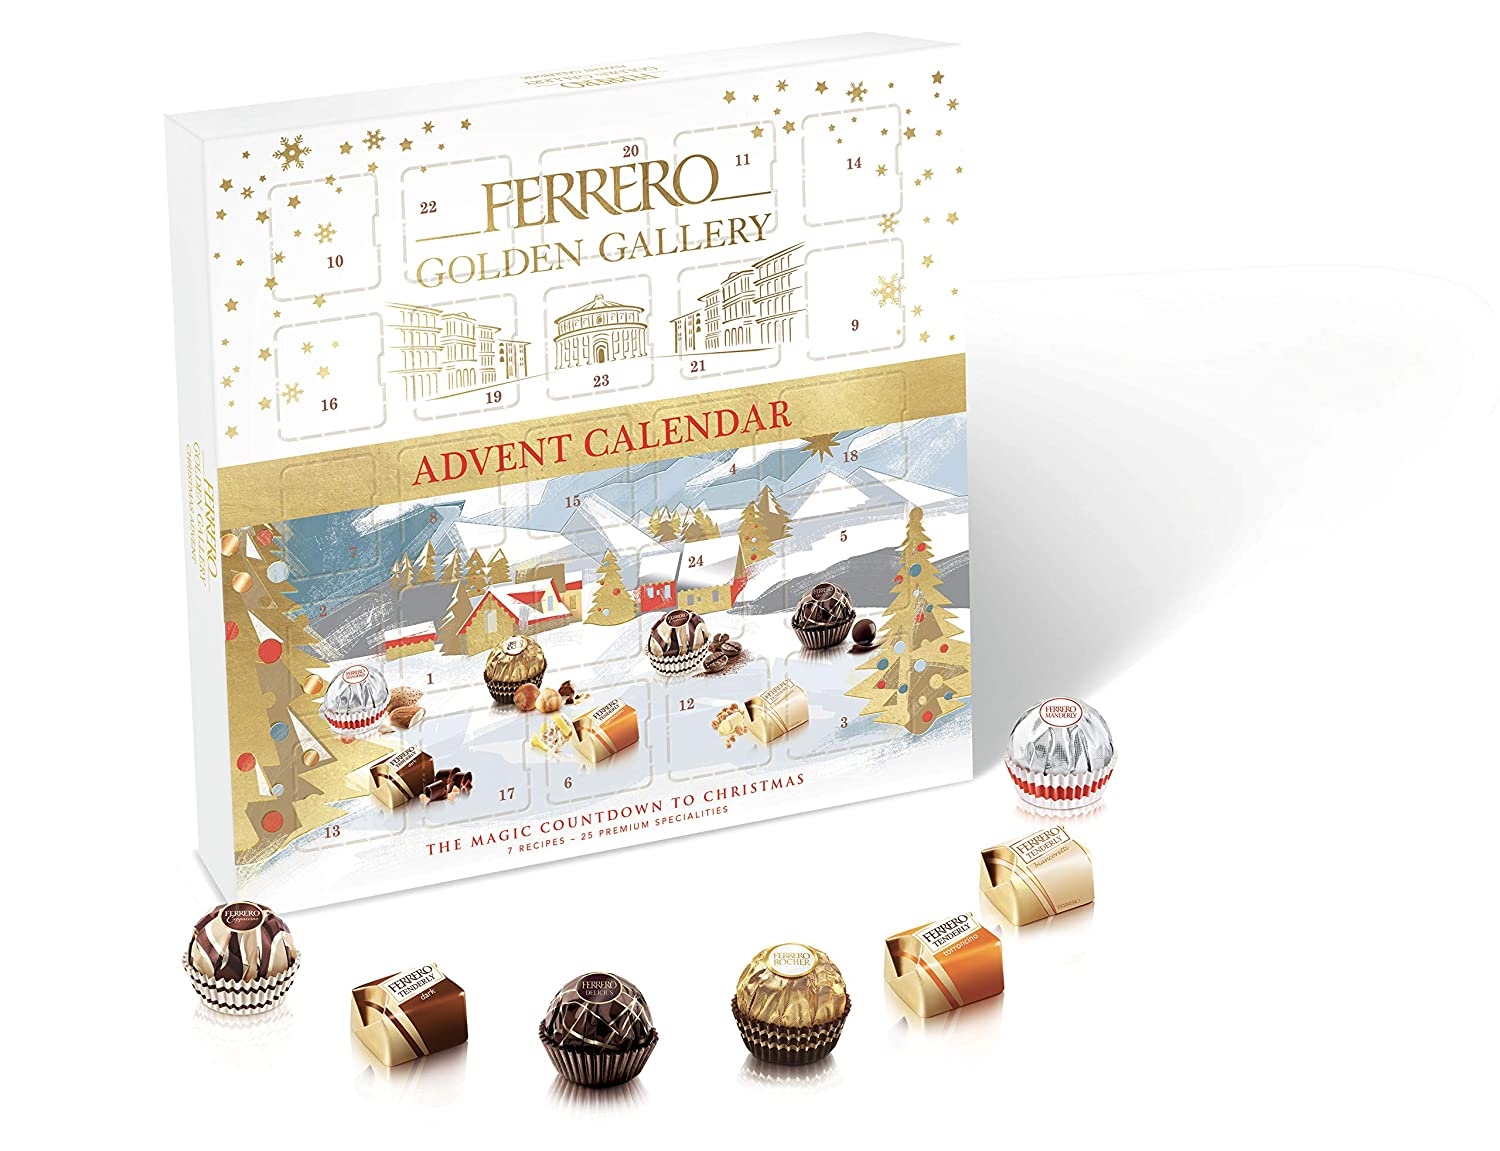 Ferrero Golden Gallery T25 Advent, 233g